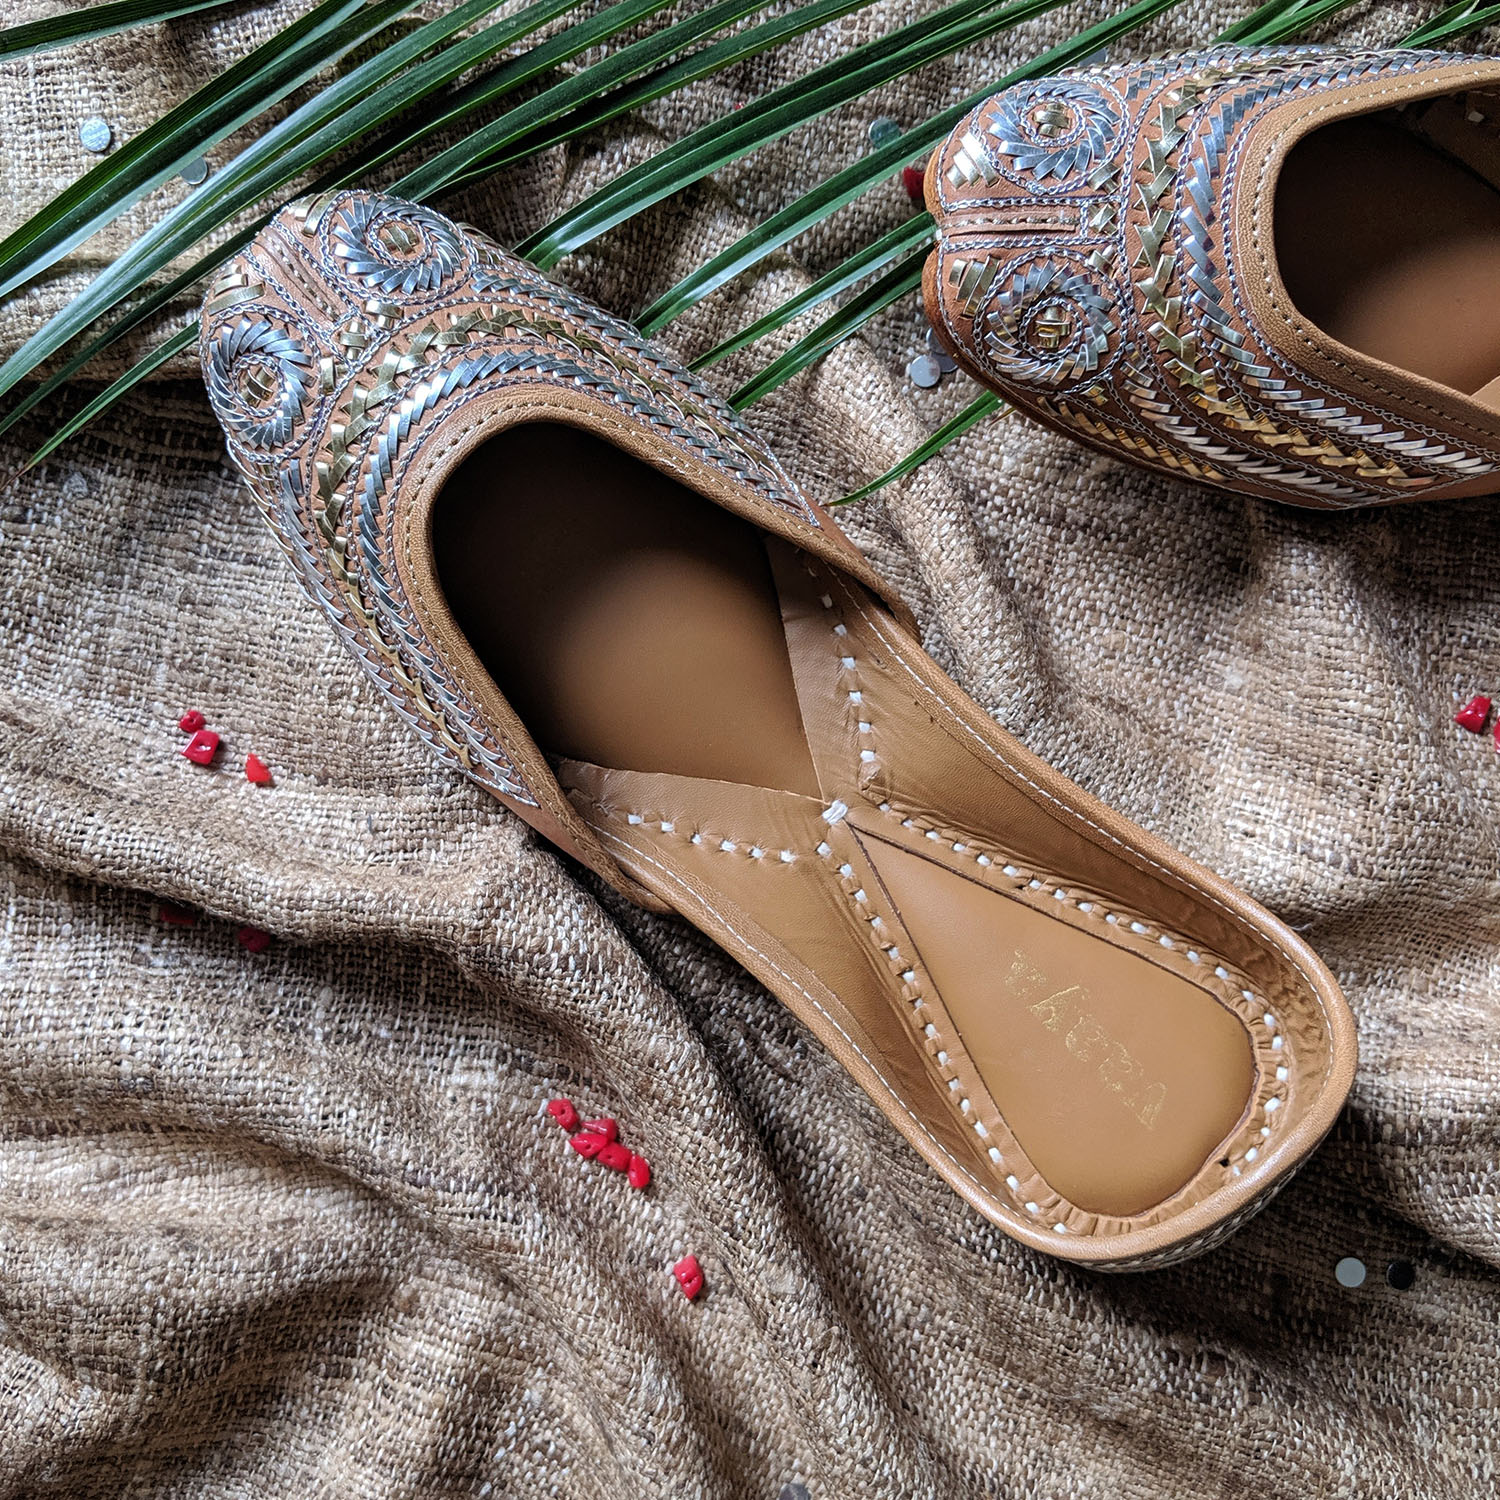 The Chandra Silver & Gold Taar Jutti